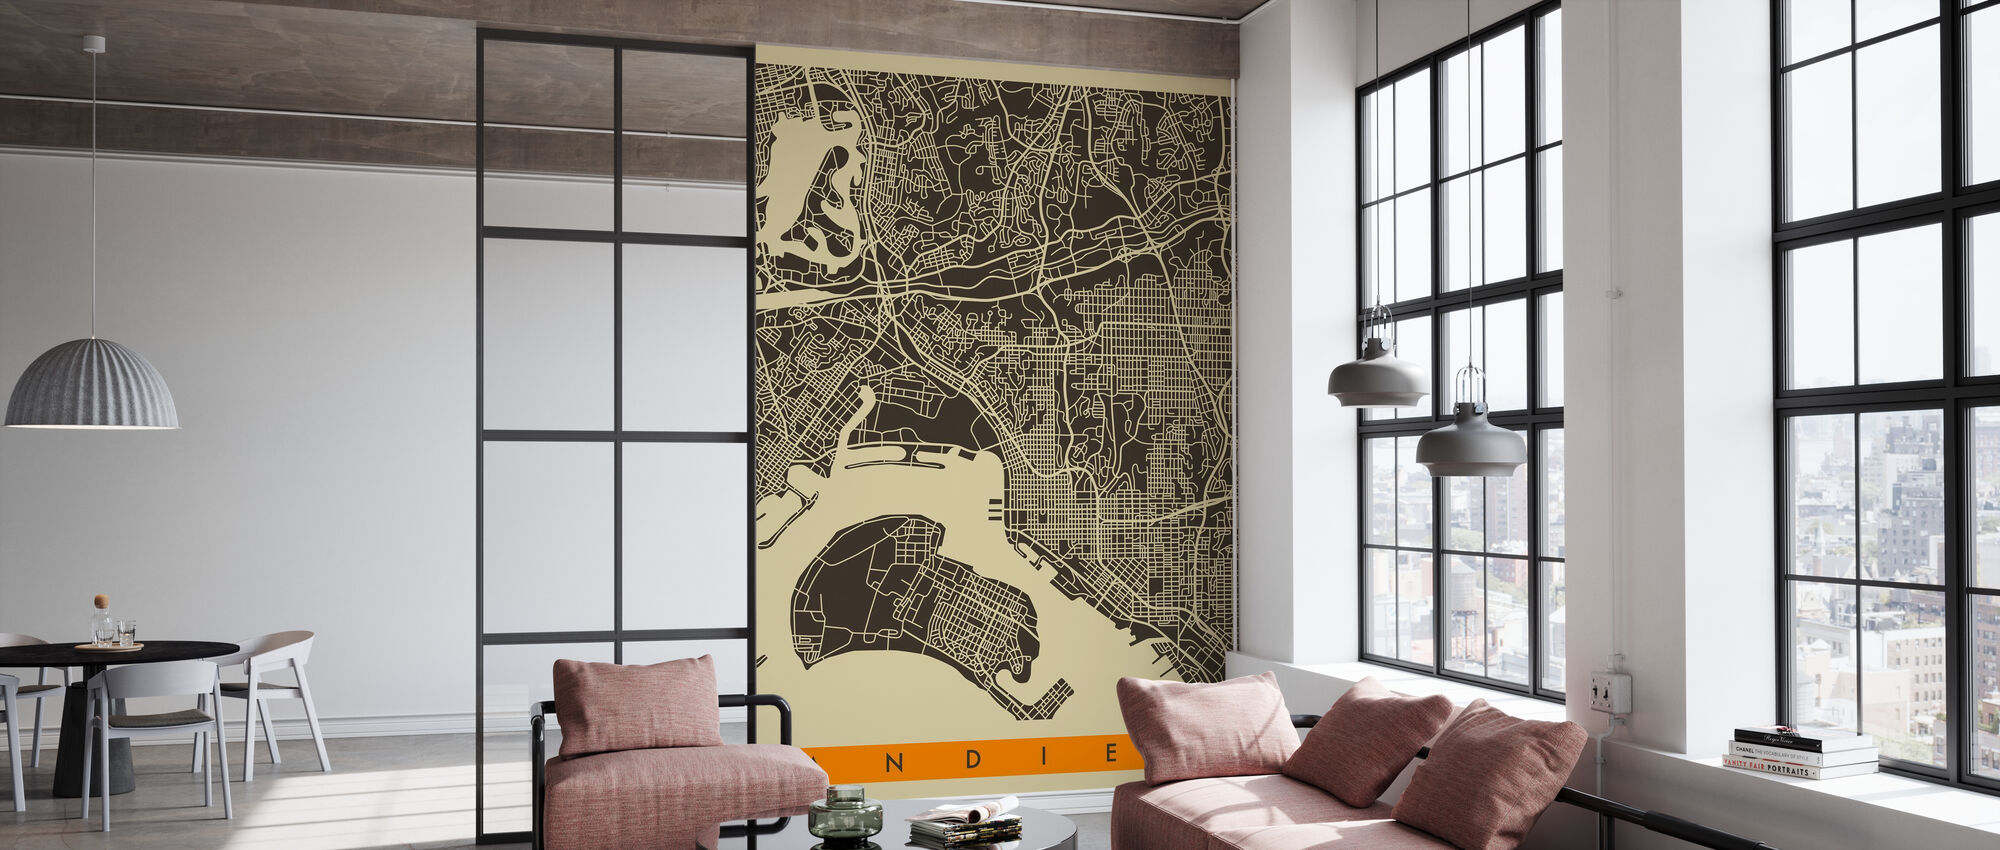 City Map - San Diego - Wallpaper - Office